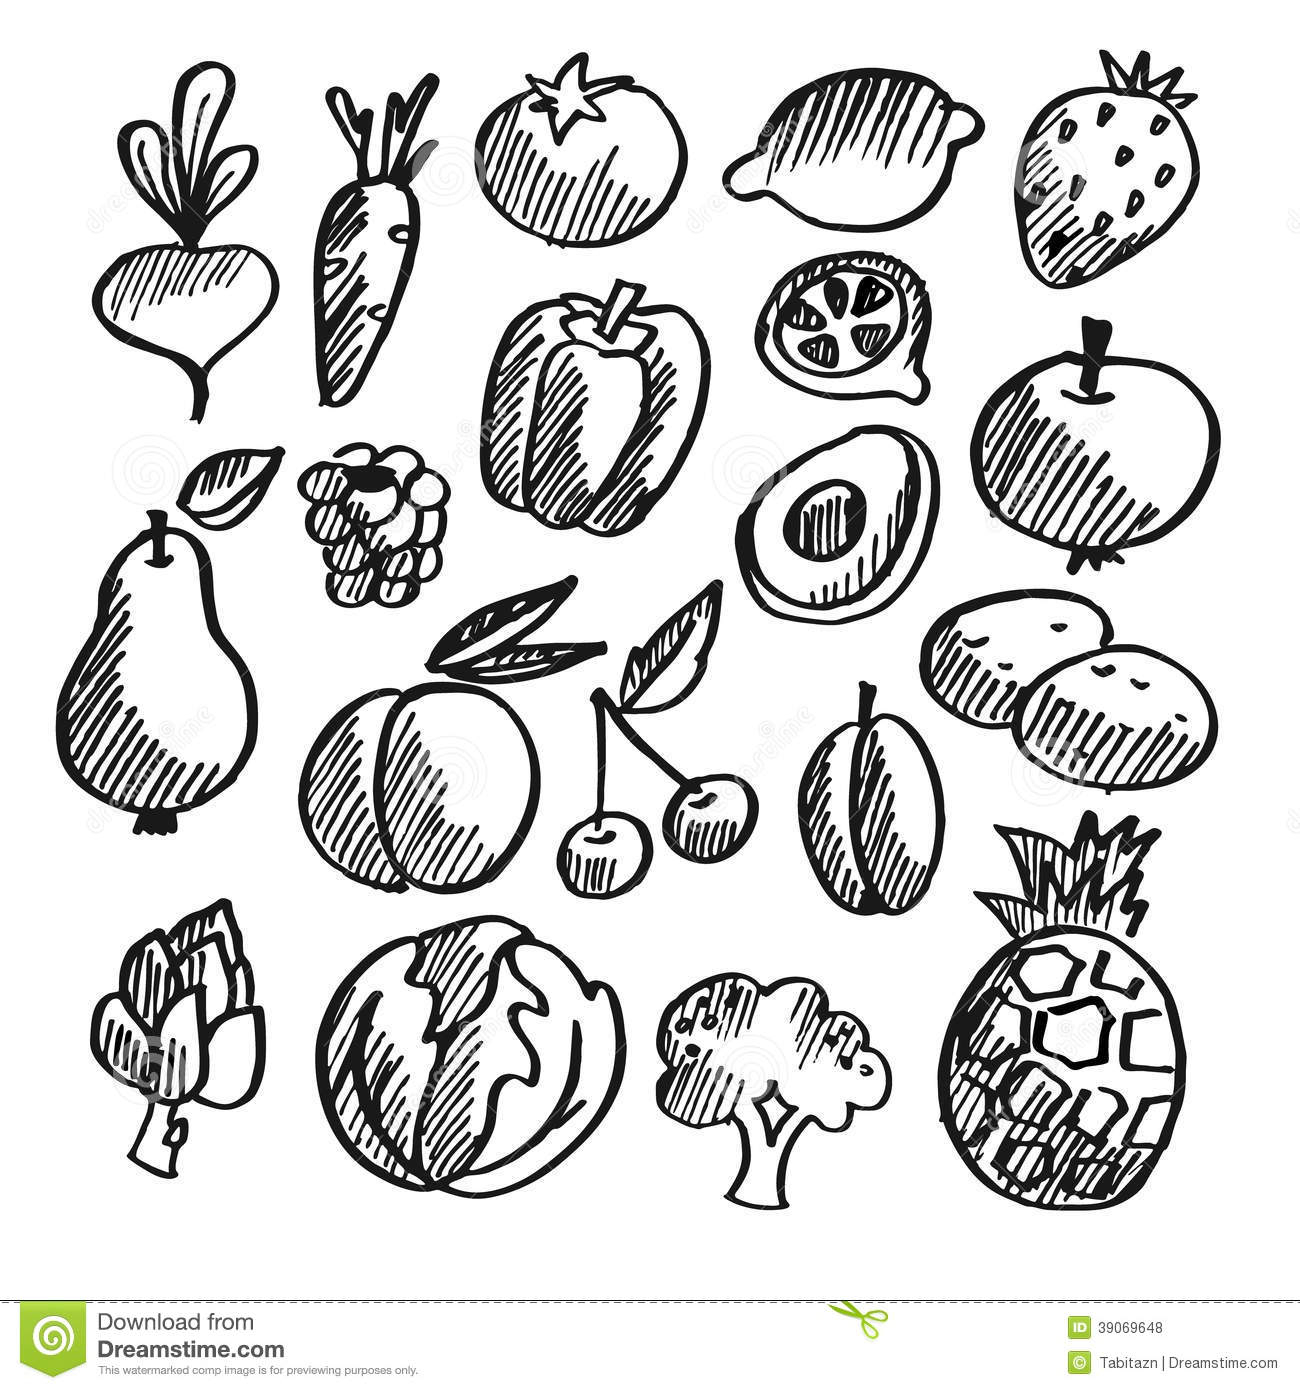 Fruit and veg pencil drawing black and white fruits vegetables clipart sketch pencil and in color fruits